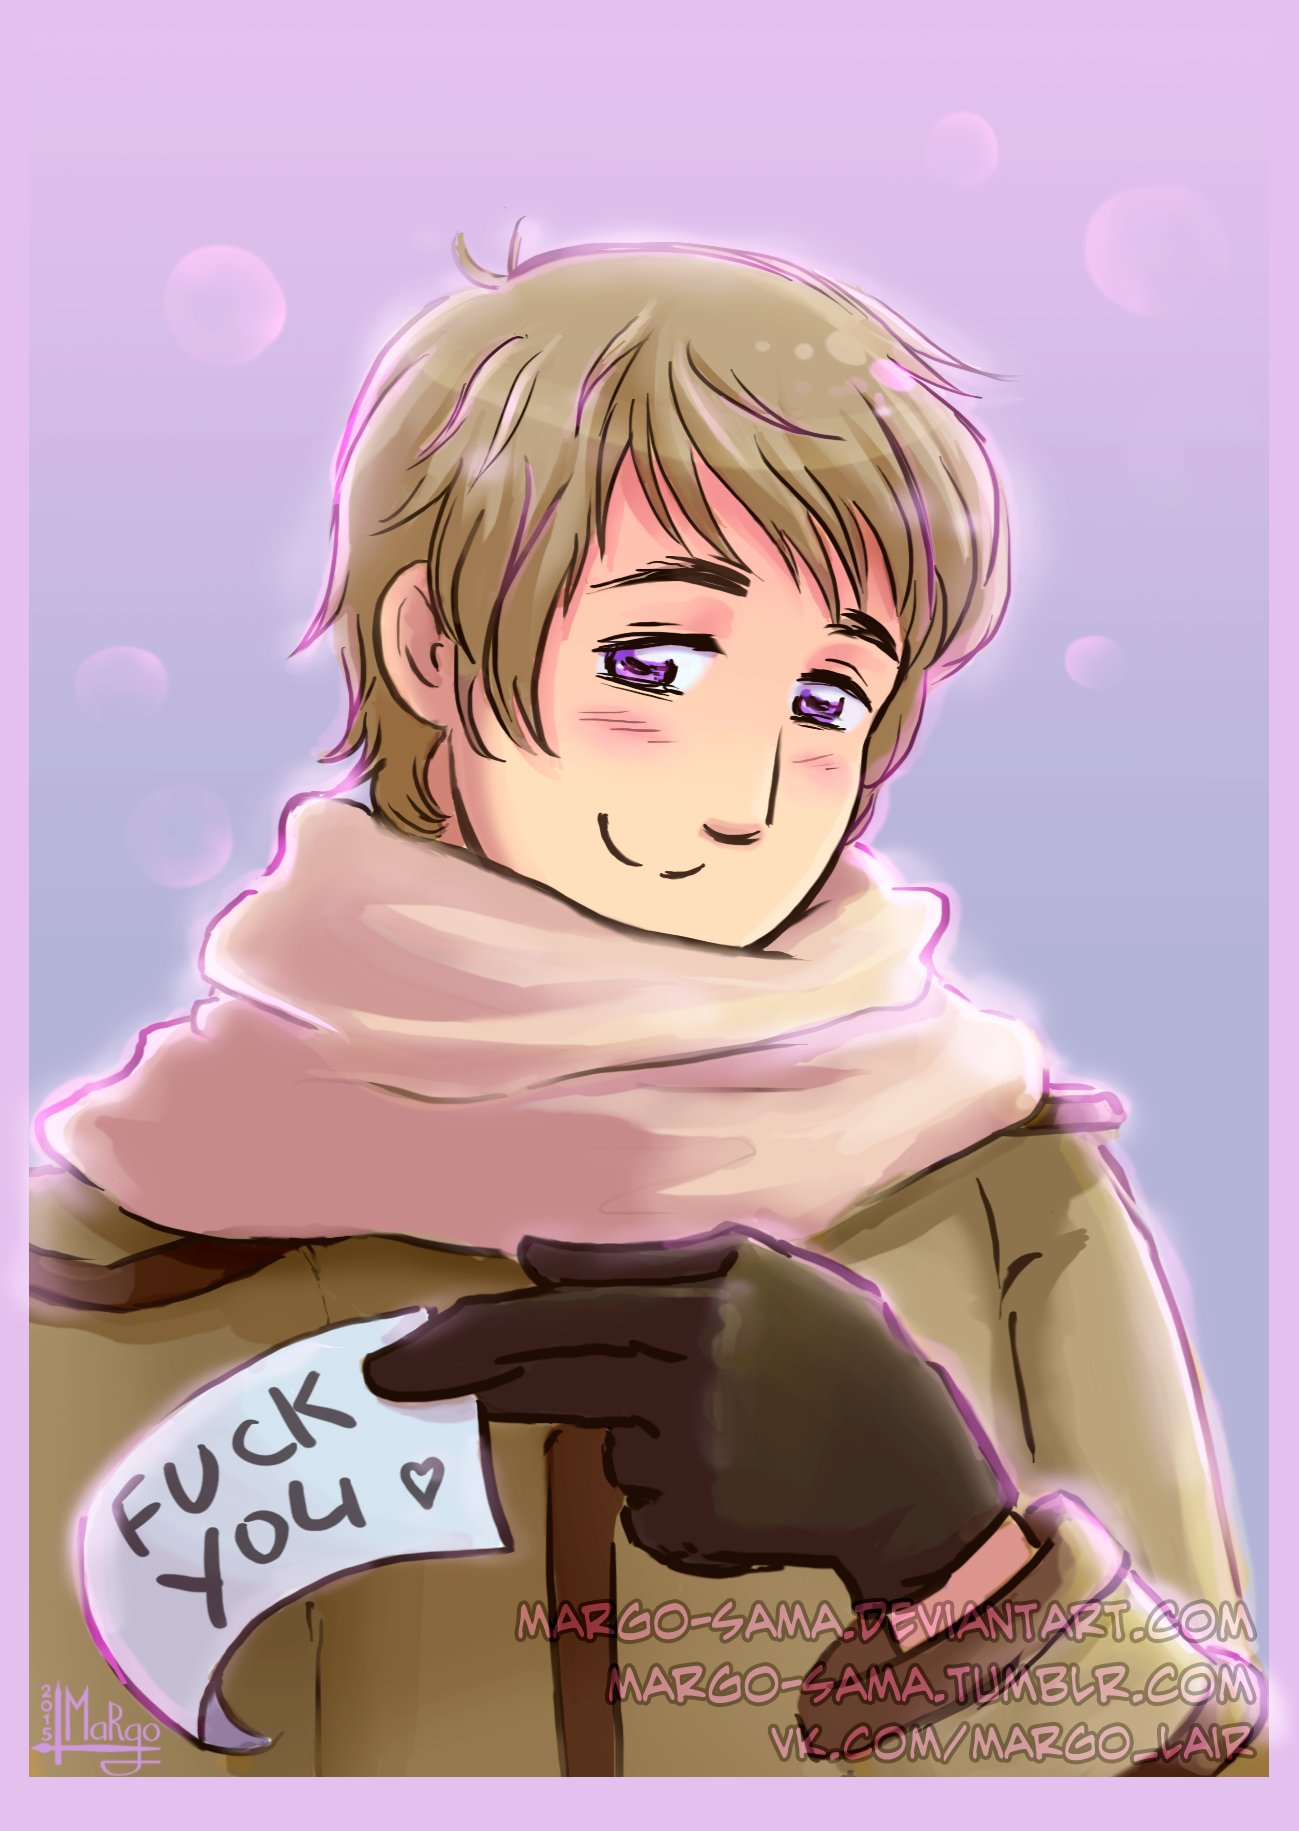 [APH][Russia] F response by Margo-sama on DeviantArt